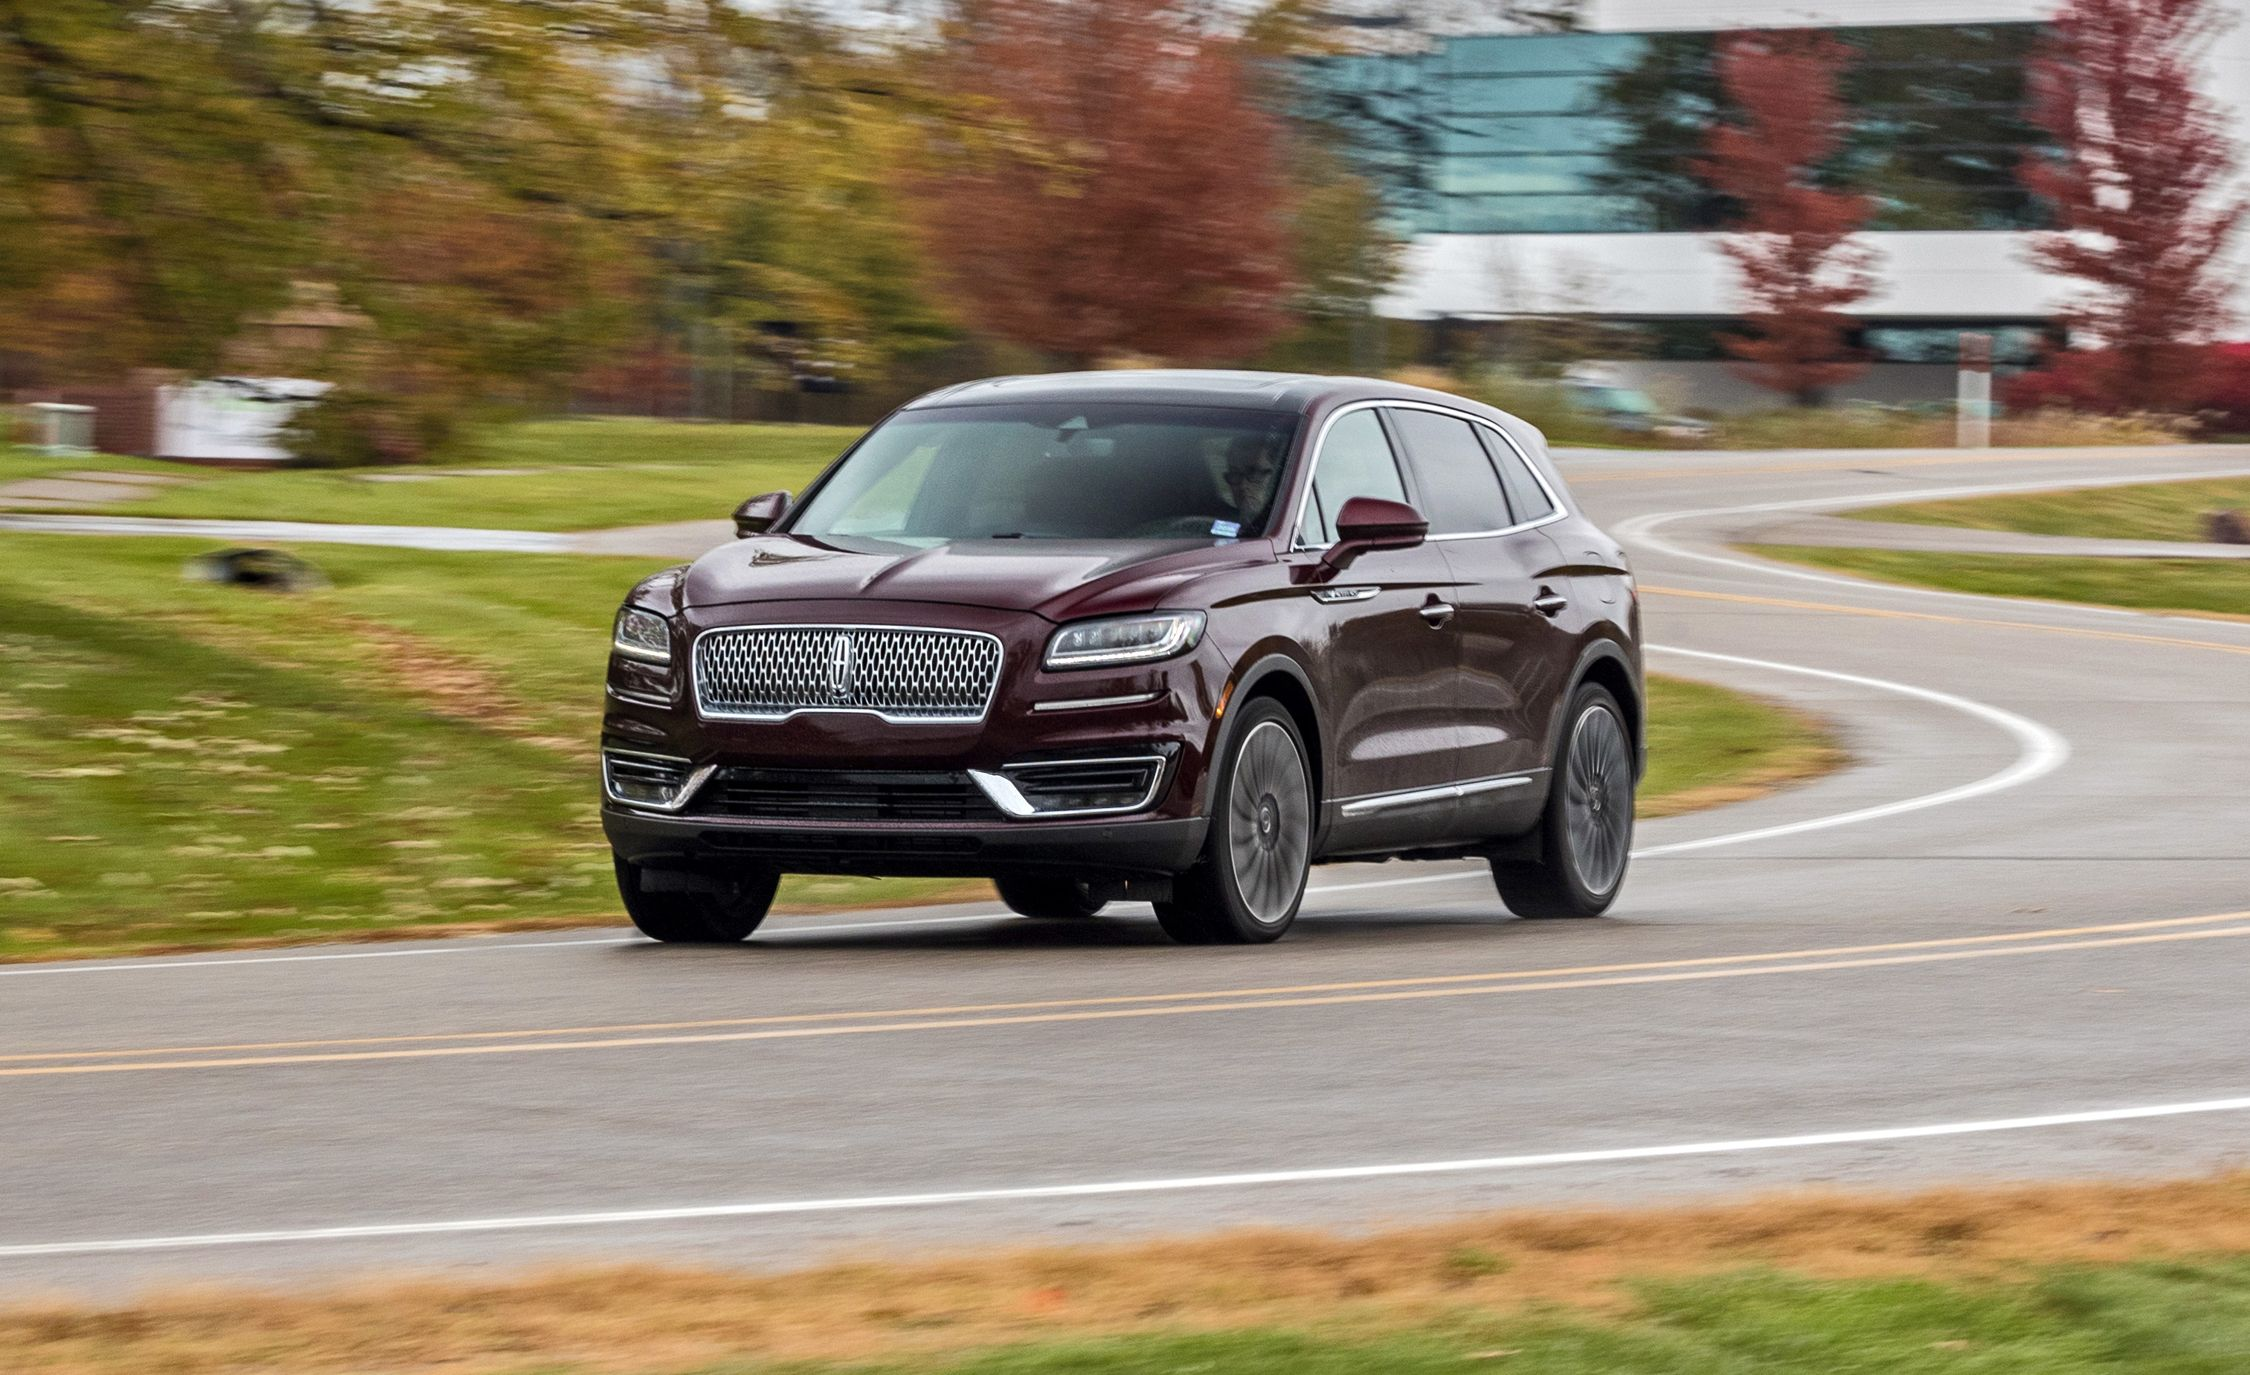 The 2019 Lincoln Nautilus Crossover Is A Renamed And Upgraded Mkx